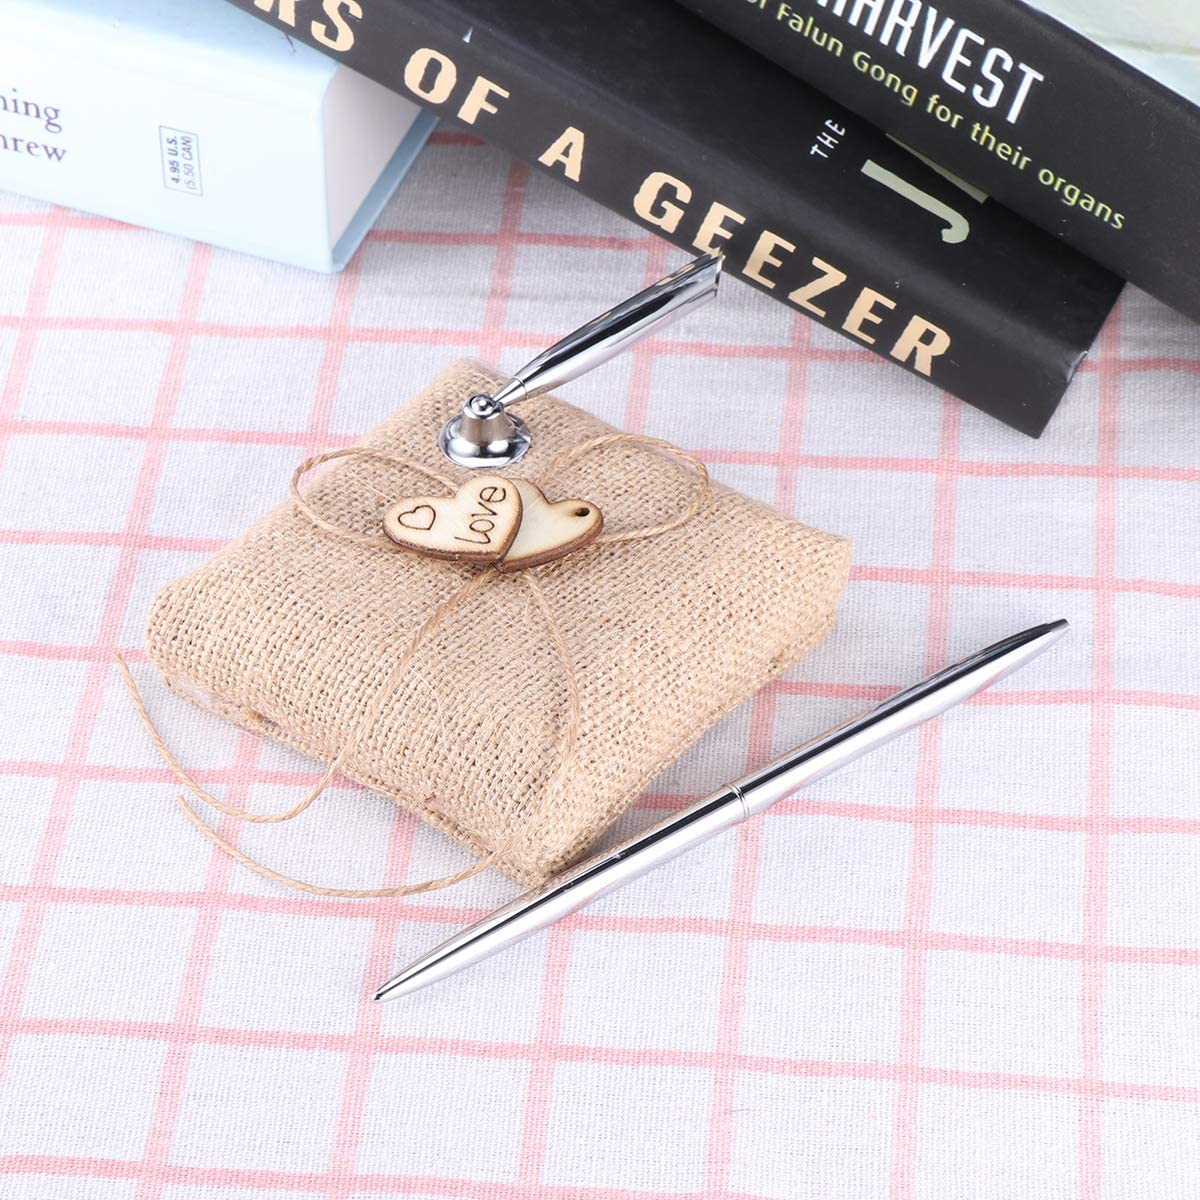 EBTOYS Vintage Burlap Wedding Reception Guest Pen with Stand Wooden Hearts Embellished Wedding Reception Party Table Decor